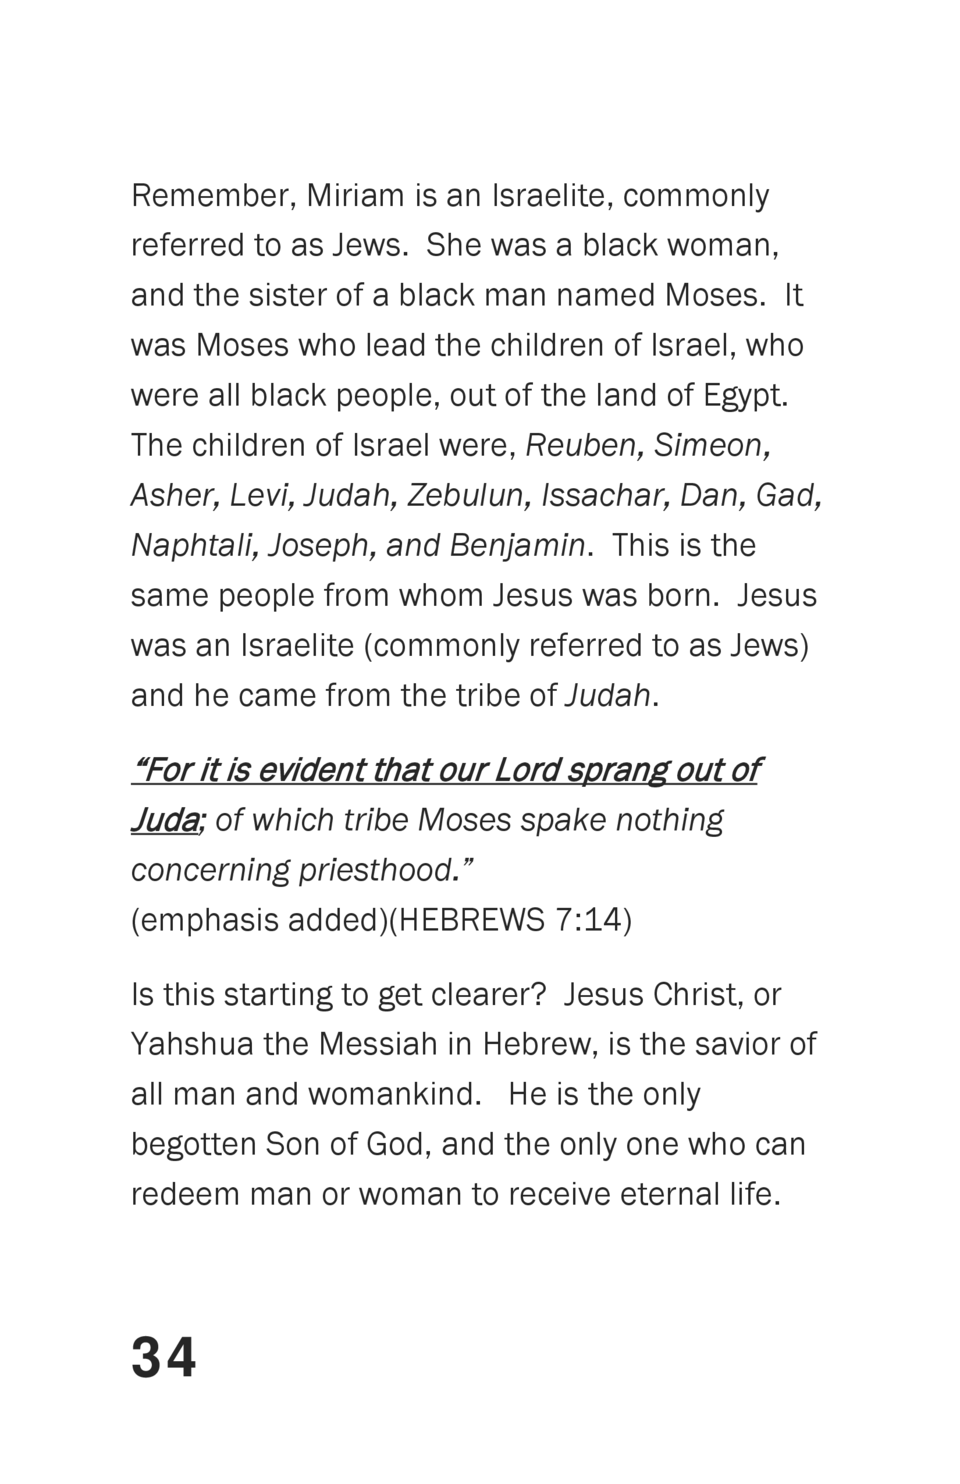 Remember, Miriam is an Israelite, commonly referred to as Jews. She was a black woman, and the sister of a black man named...